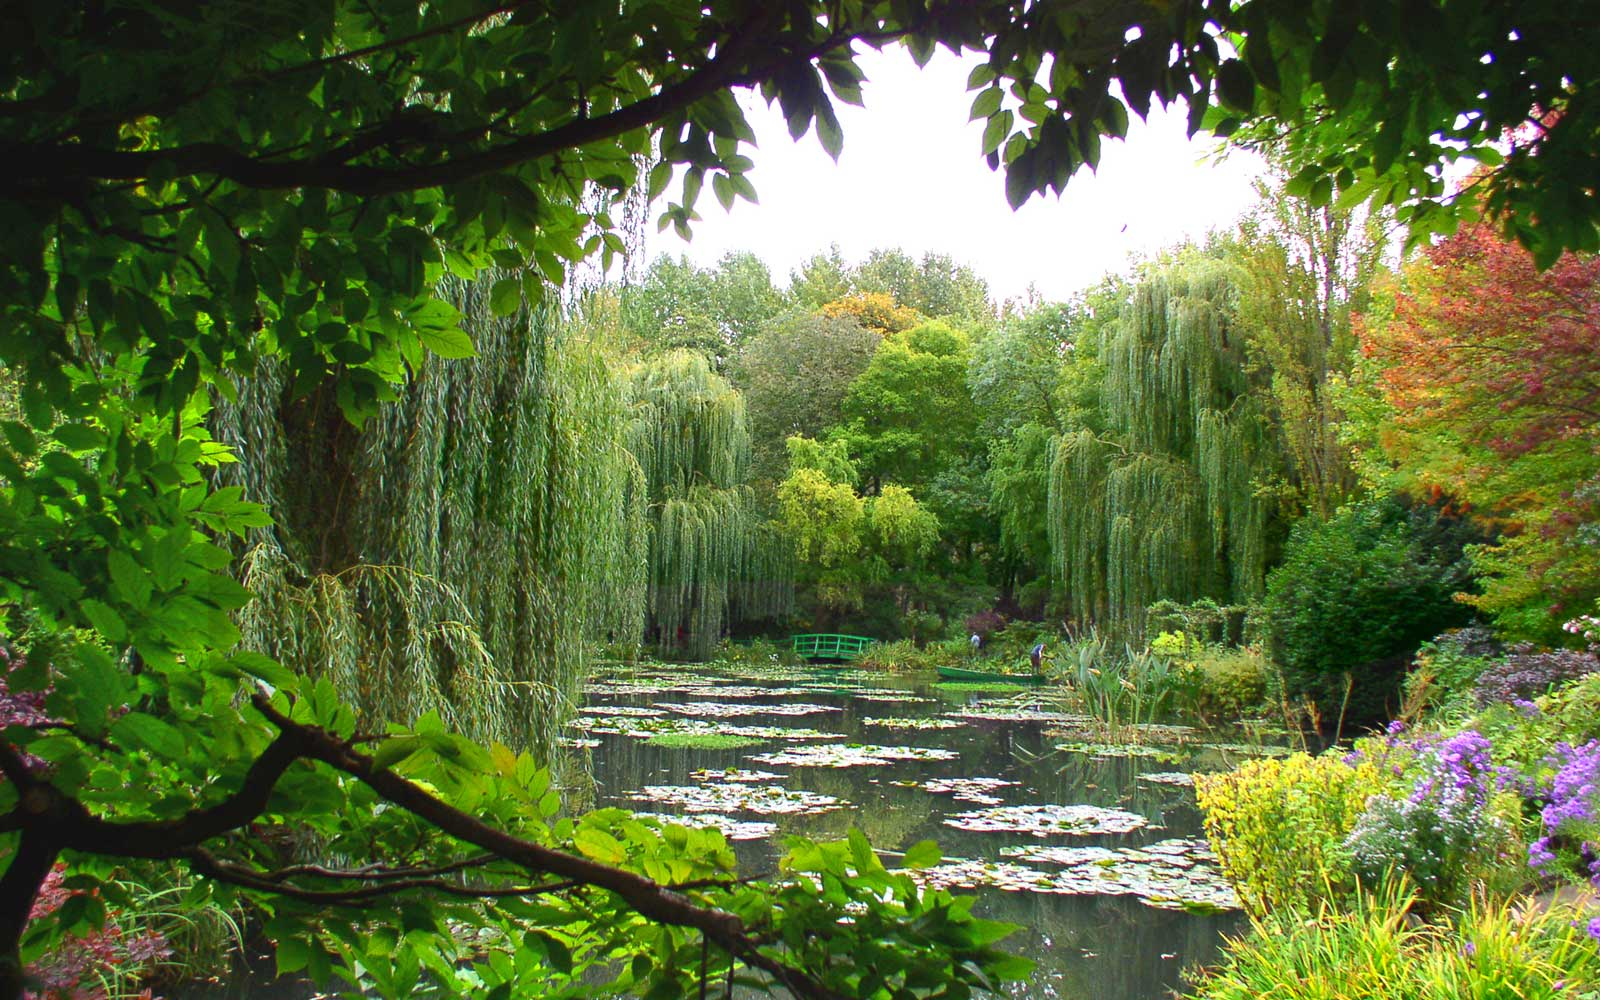 Monet's garden at Giverny, France.